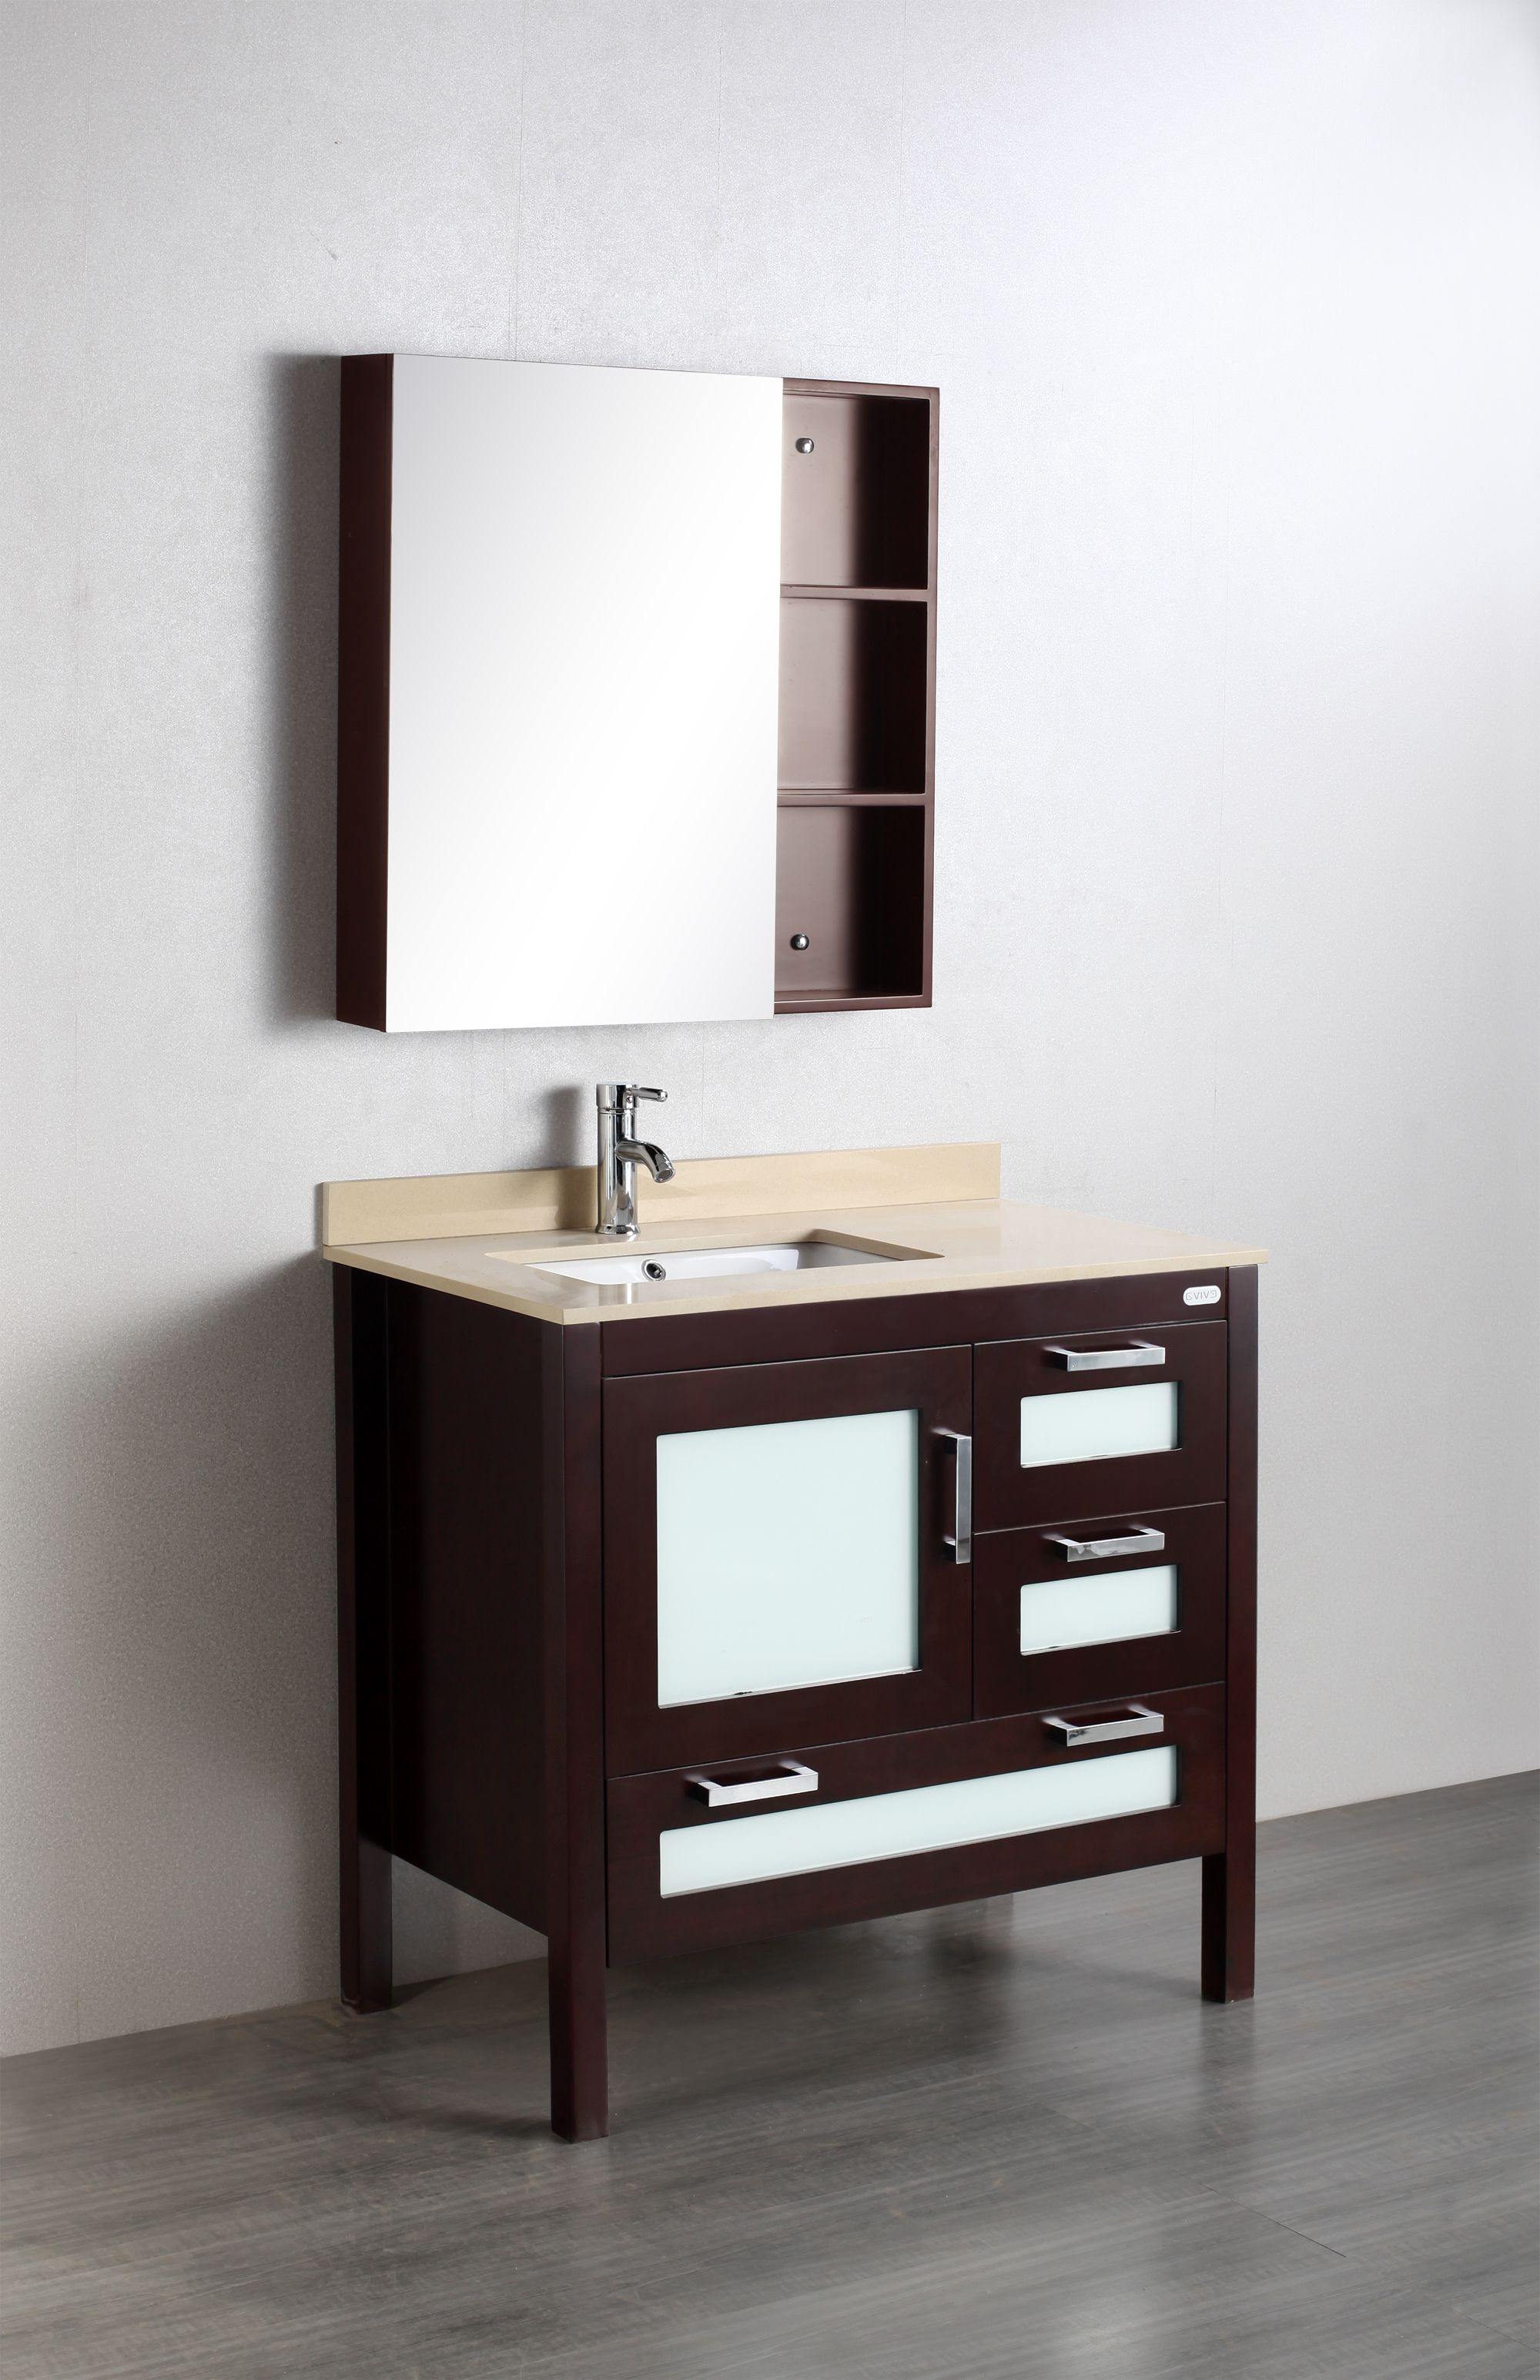 Paterson Nj In New Jersey Check Out One Of The Largest Selection Amazing Bathroom Vanities Nj 2018